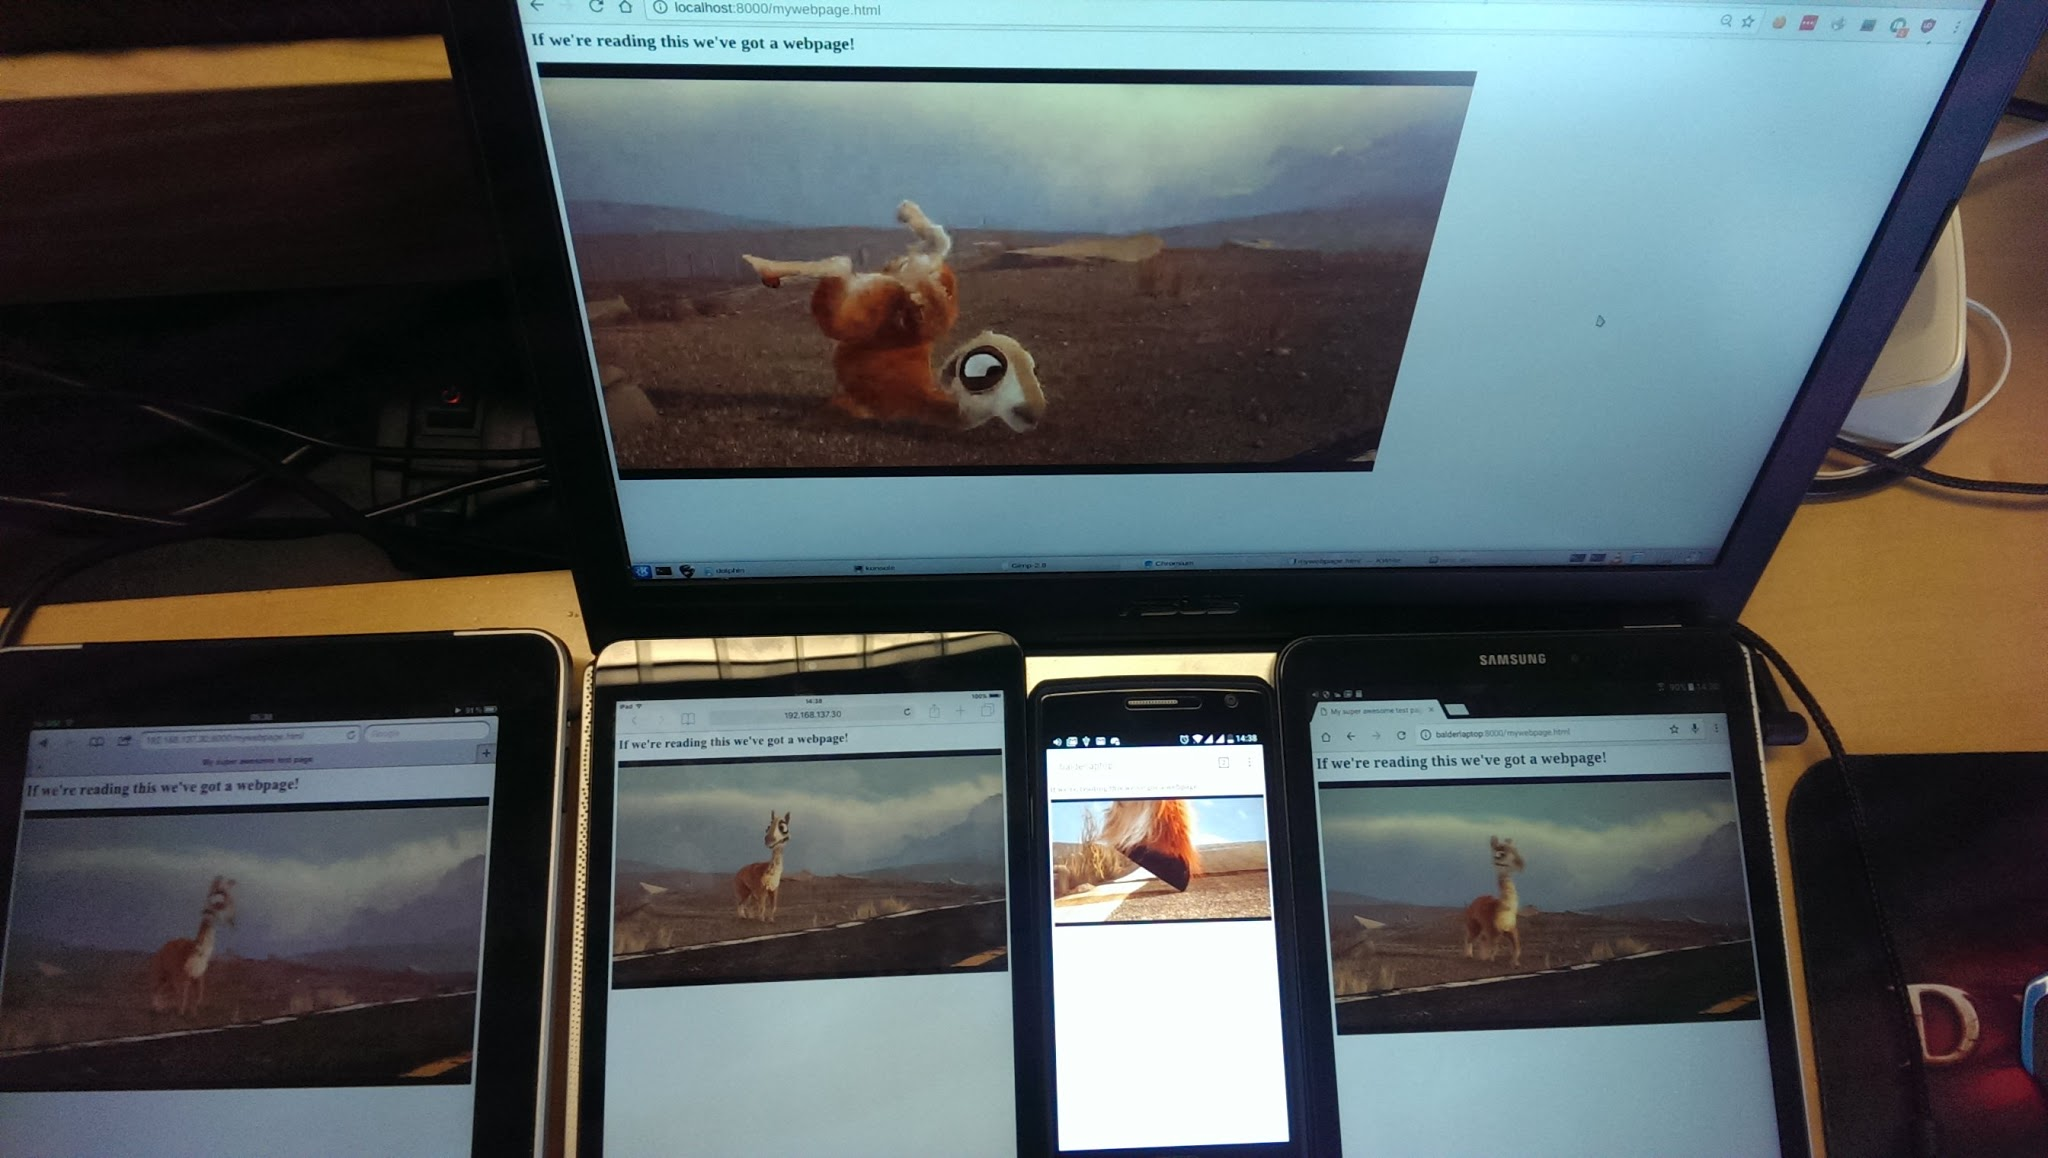 Image of video playback on multiple devices